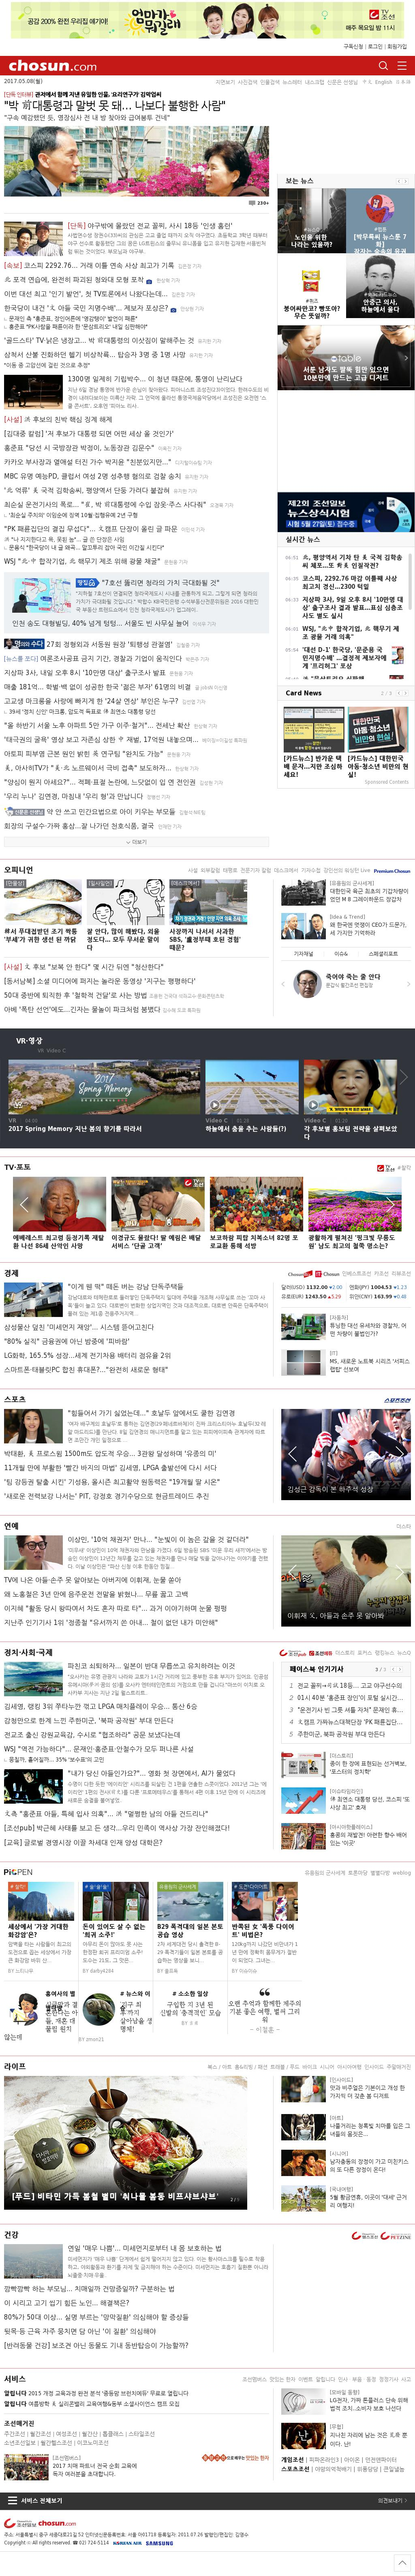 chosun.com at Monday May 8, 2017, 7:04 a.m. UTC